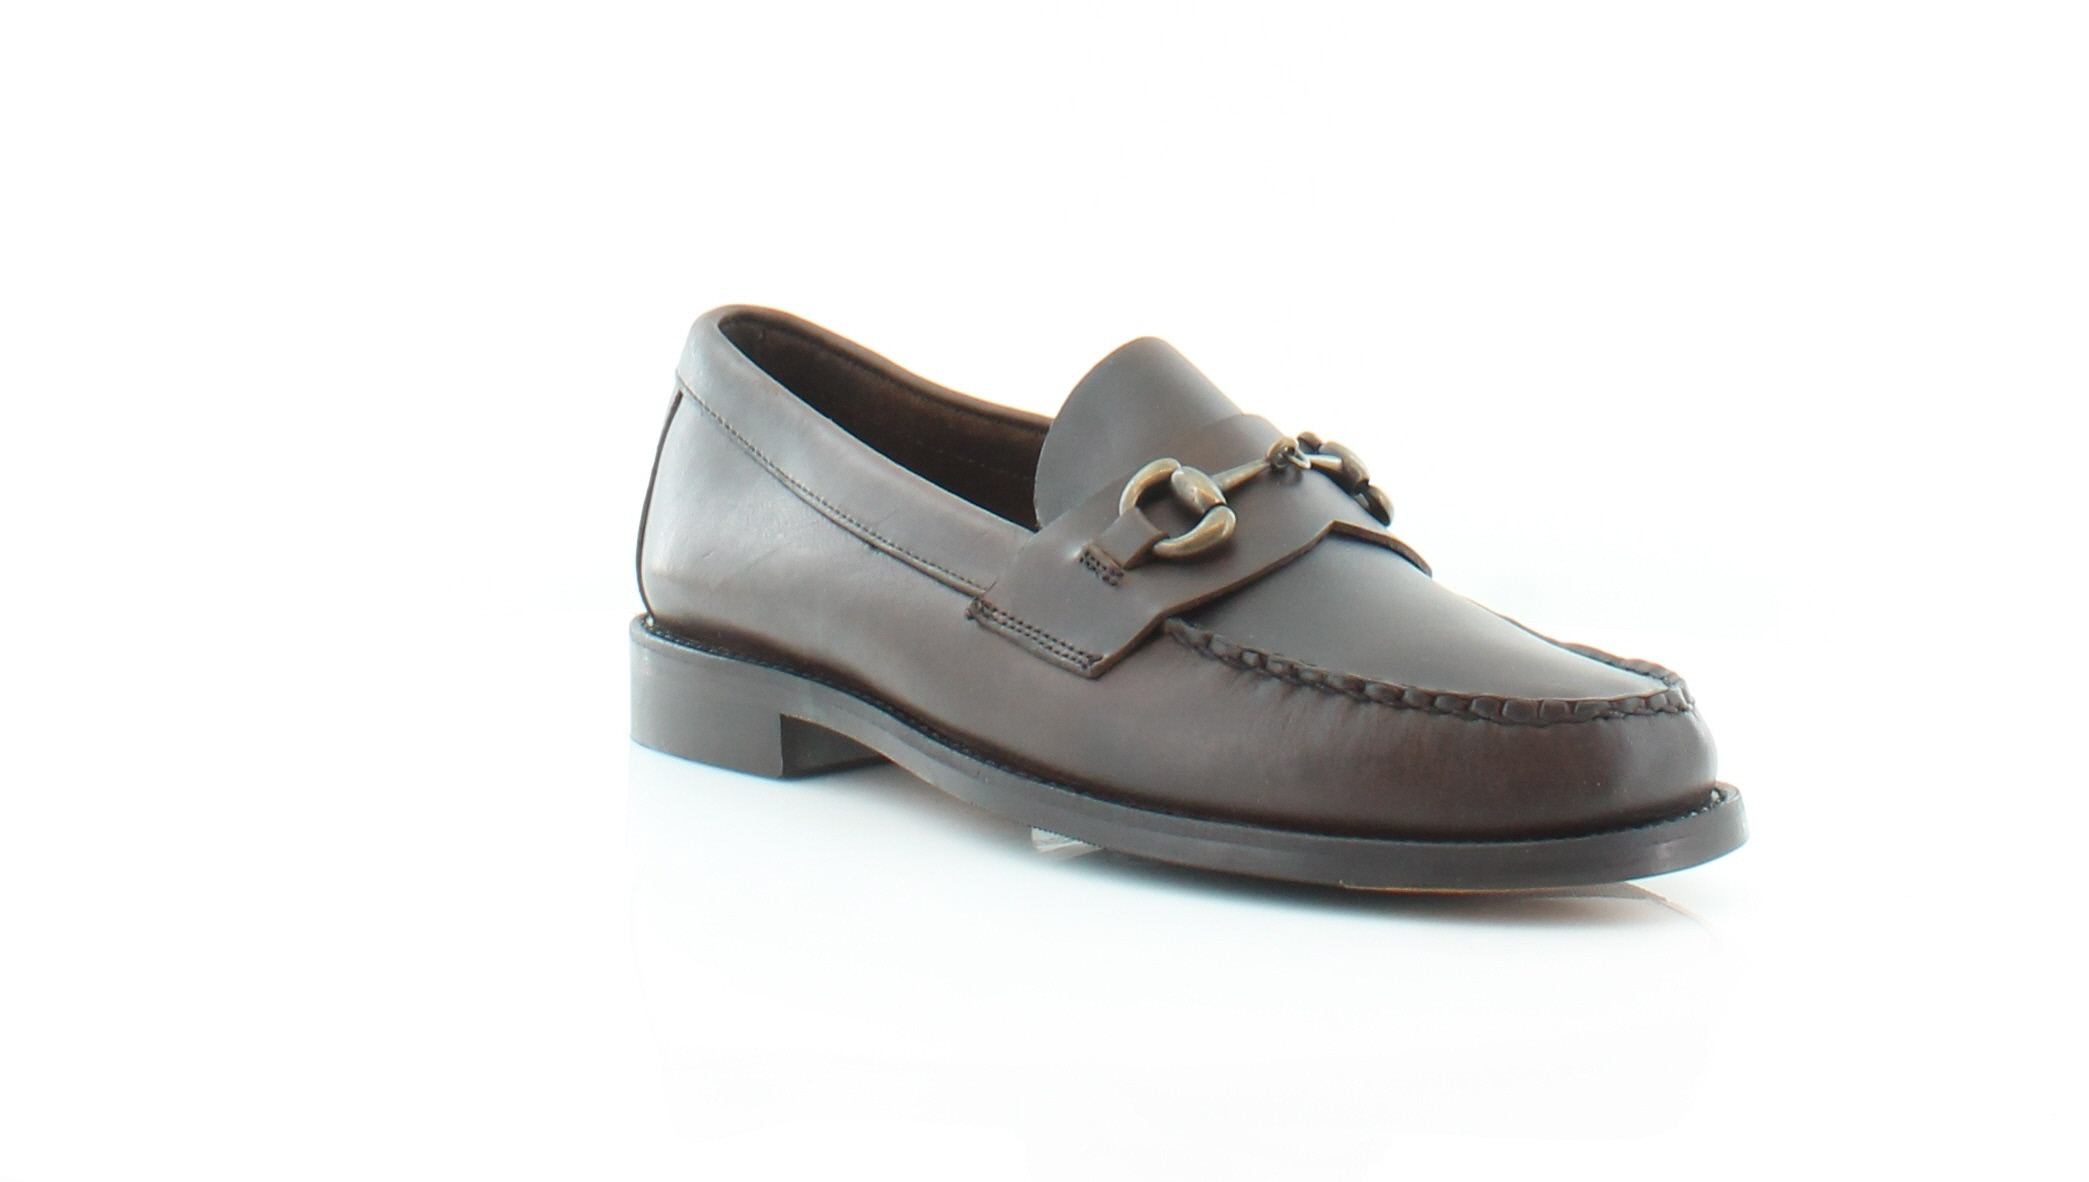 Sebago Heritage Bit Men's Dress Formal by